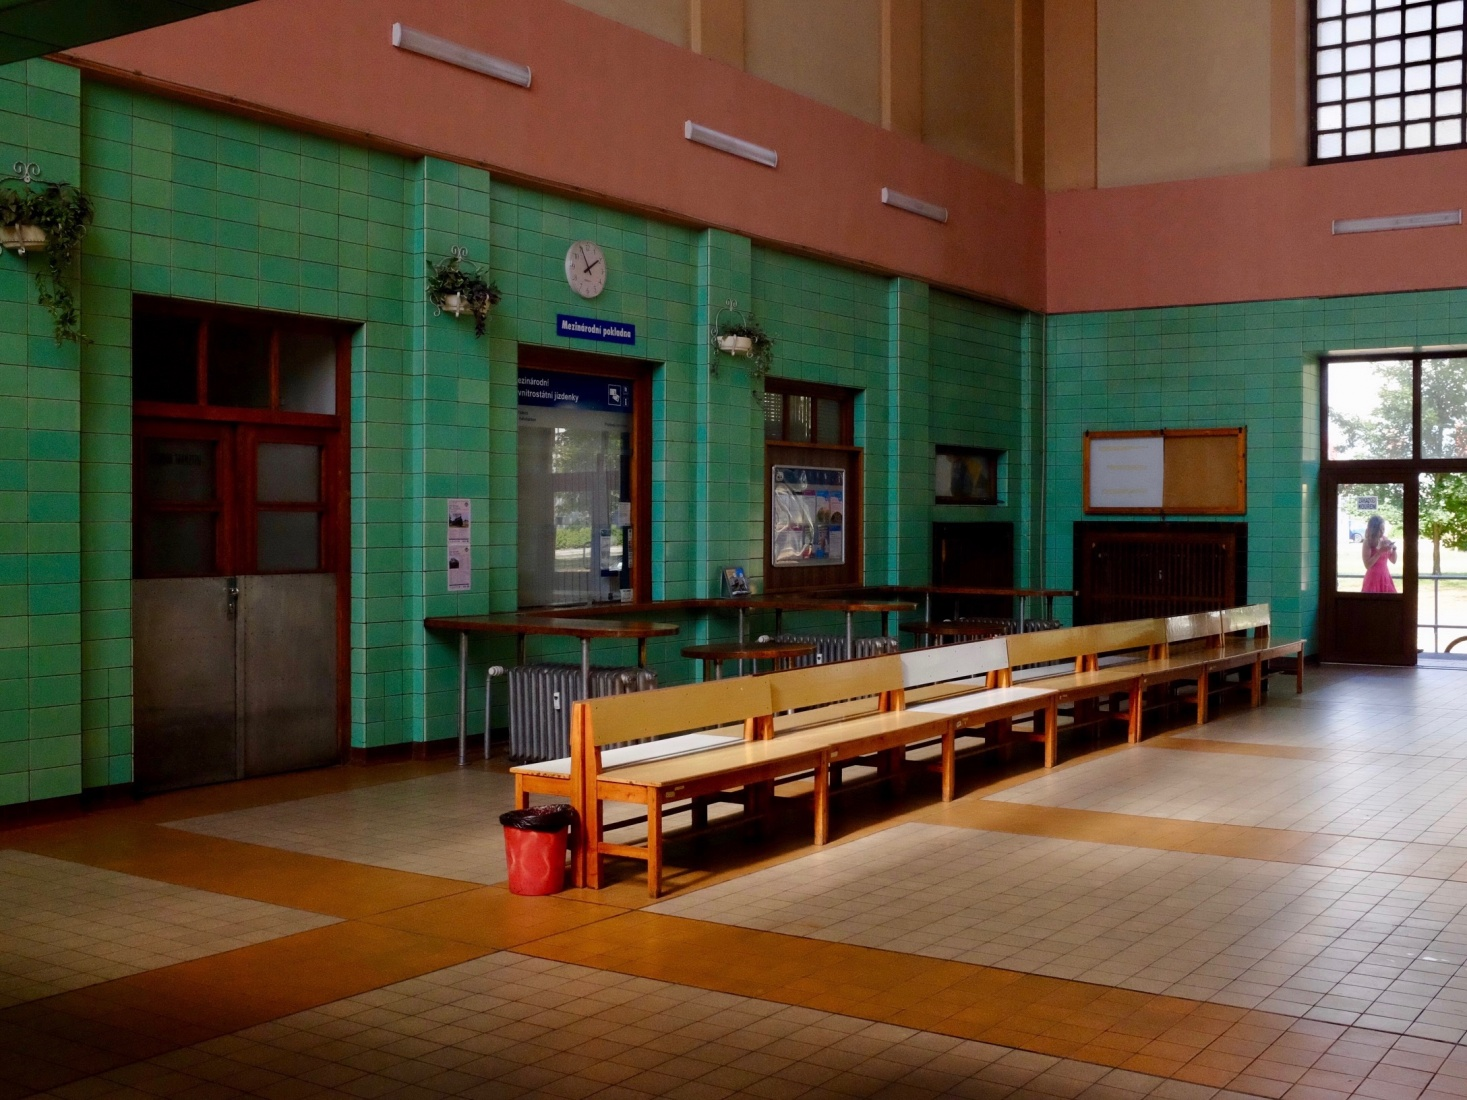 Interior of the train station at České Velenice, Czech Republic, rebuilt in the Socialist-Realist style post WWII.